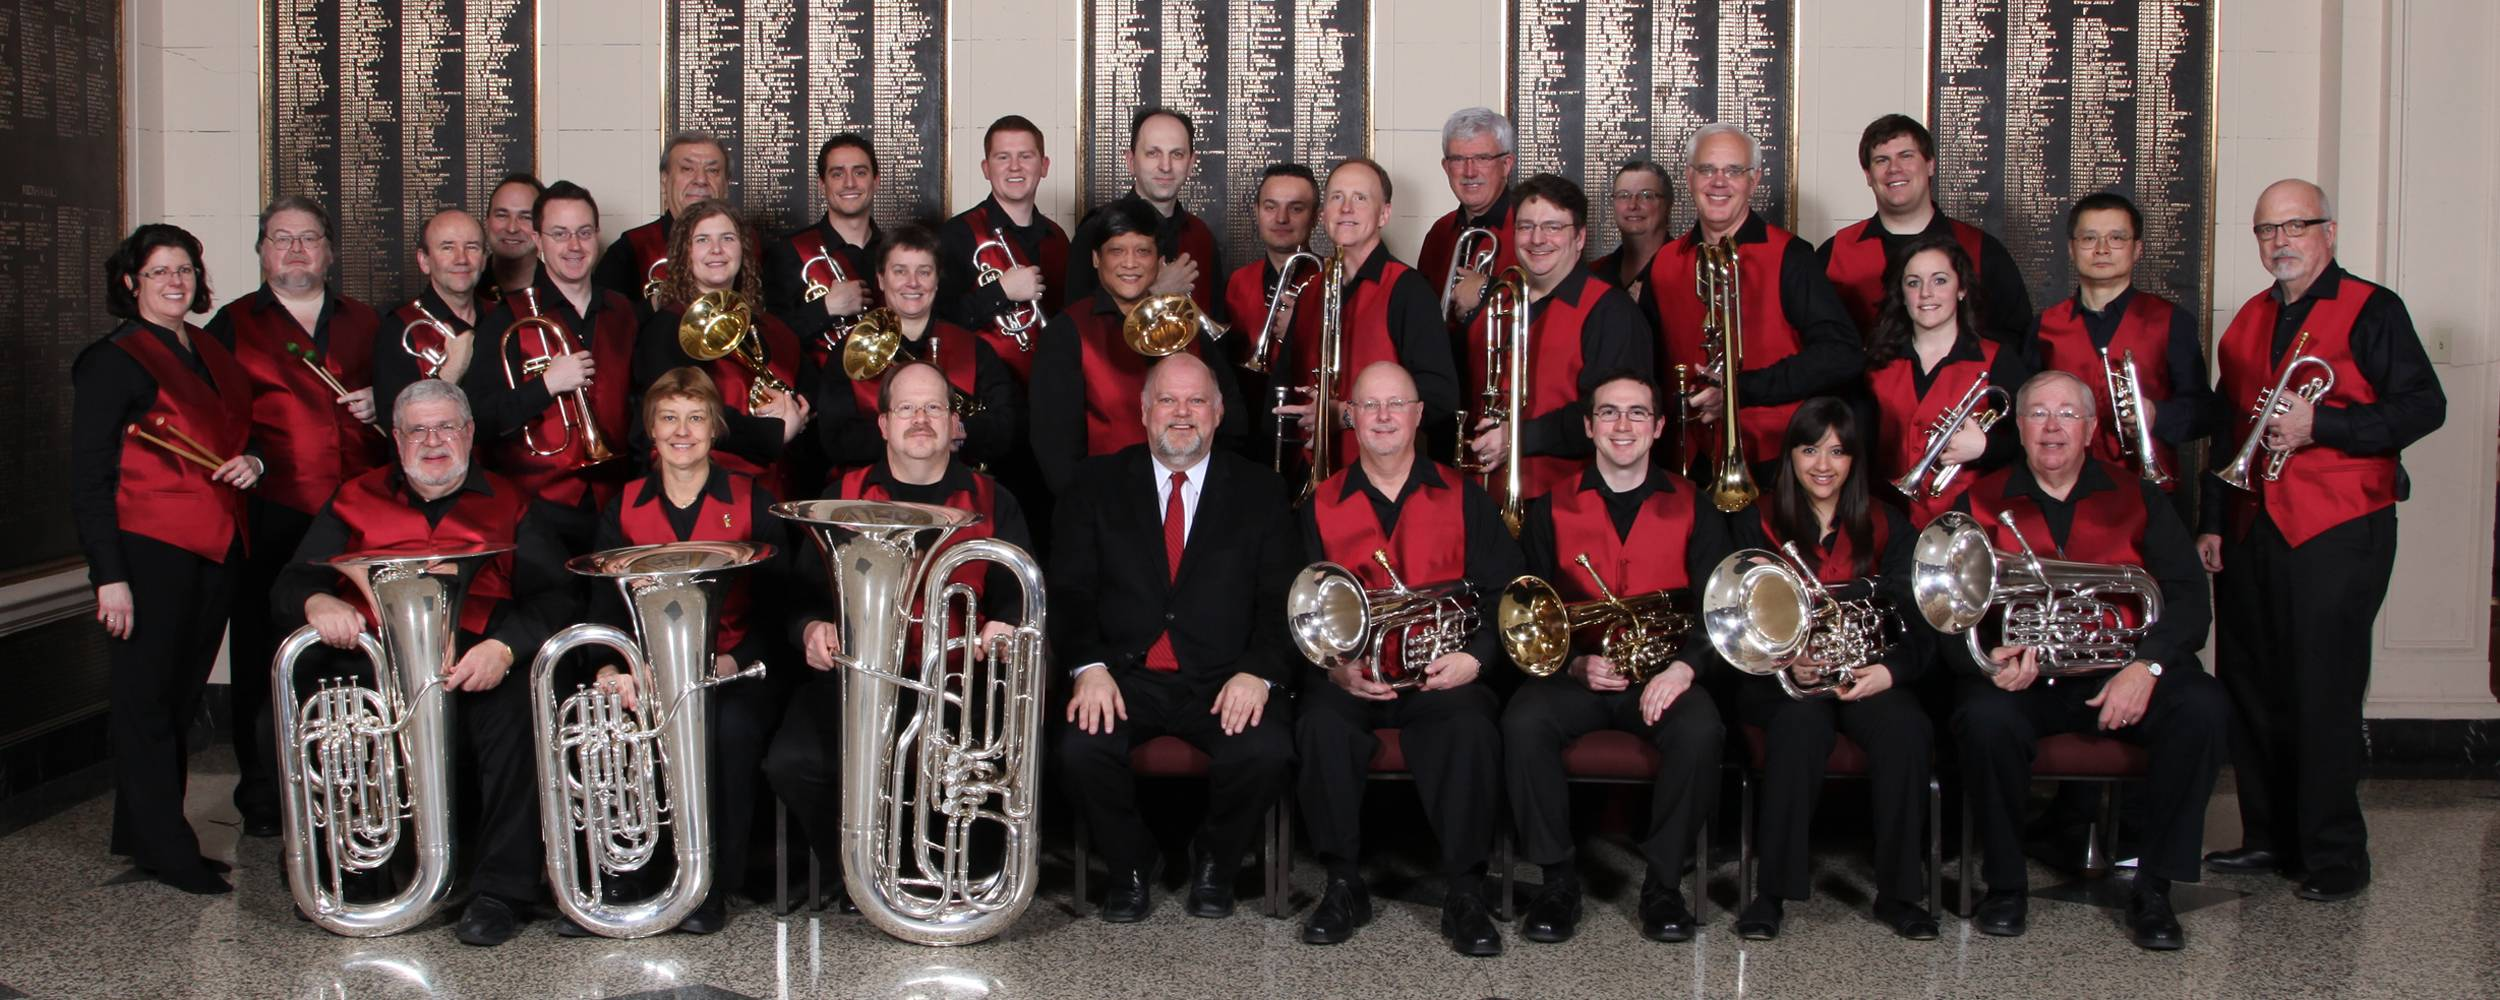 The Illinois Brass Band